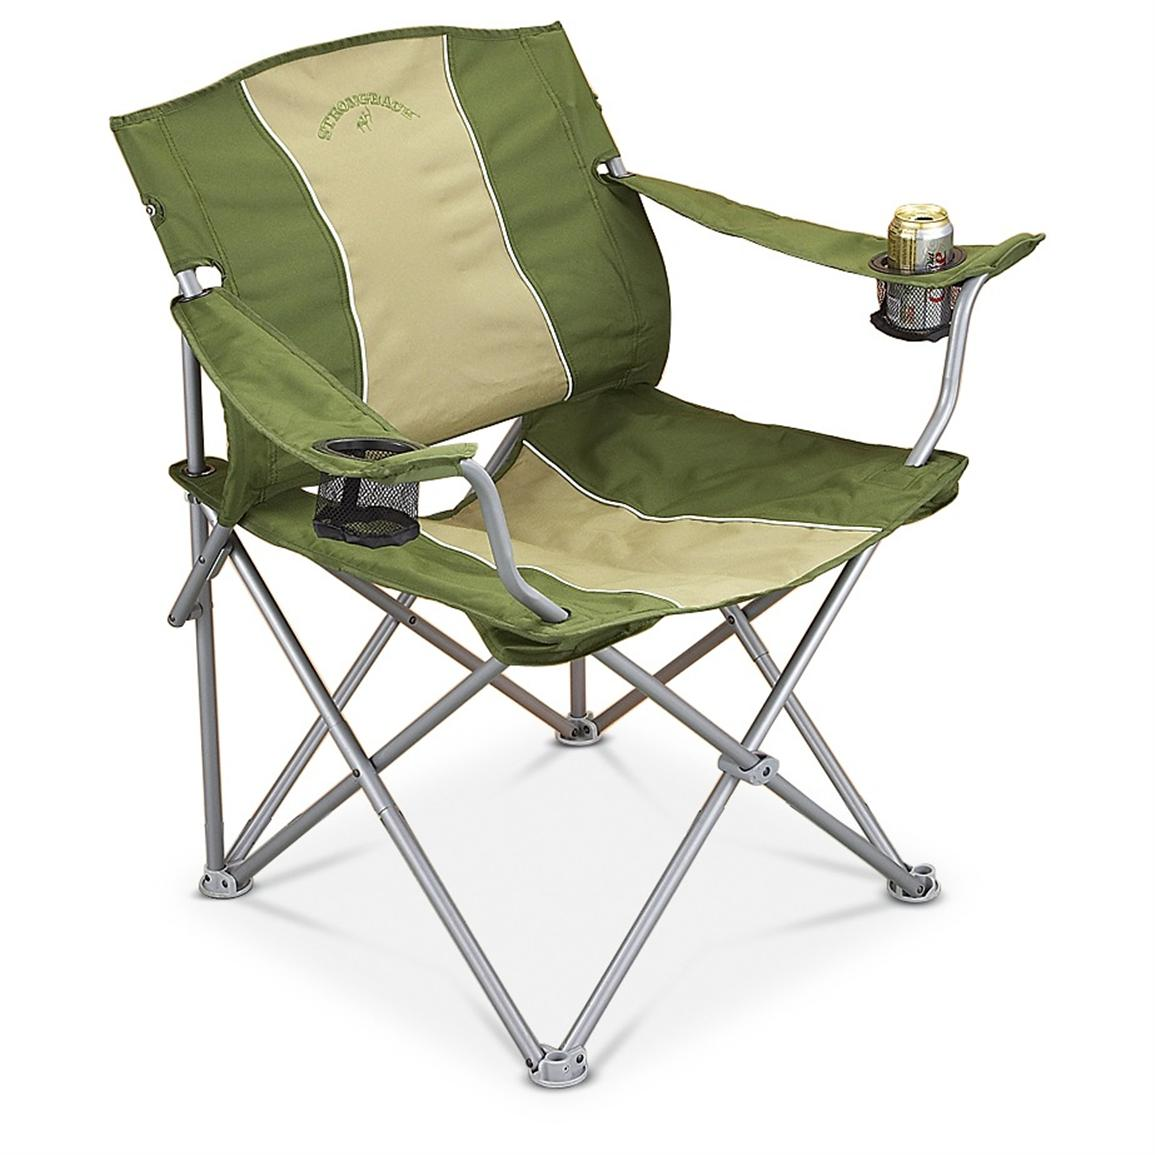 Campfire Chairs Guide Gear Oversized Strongback Folding Camp Chair